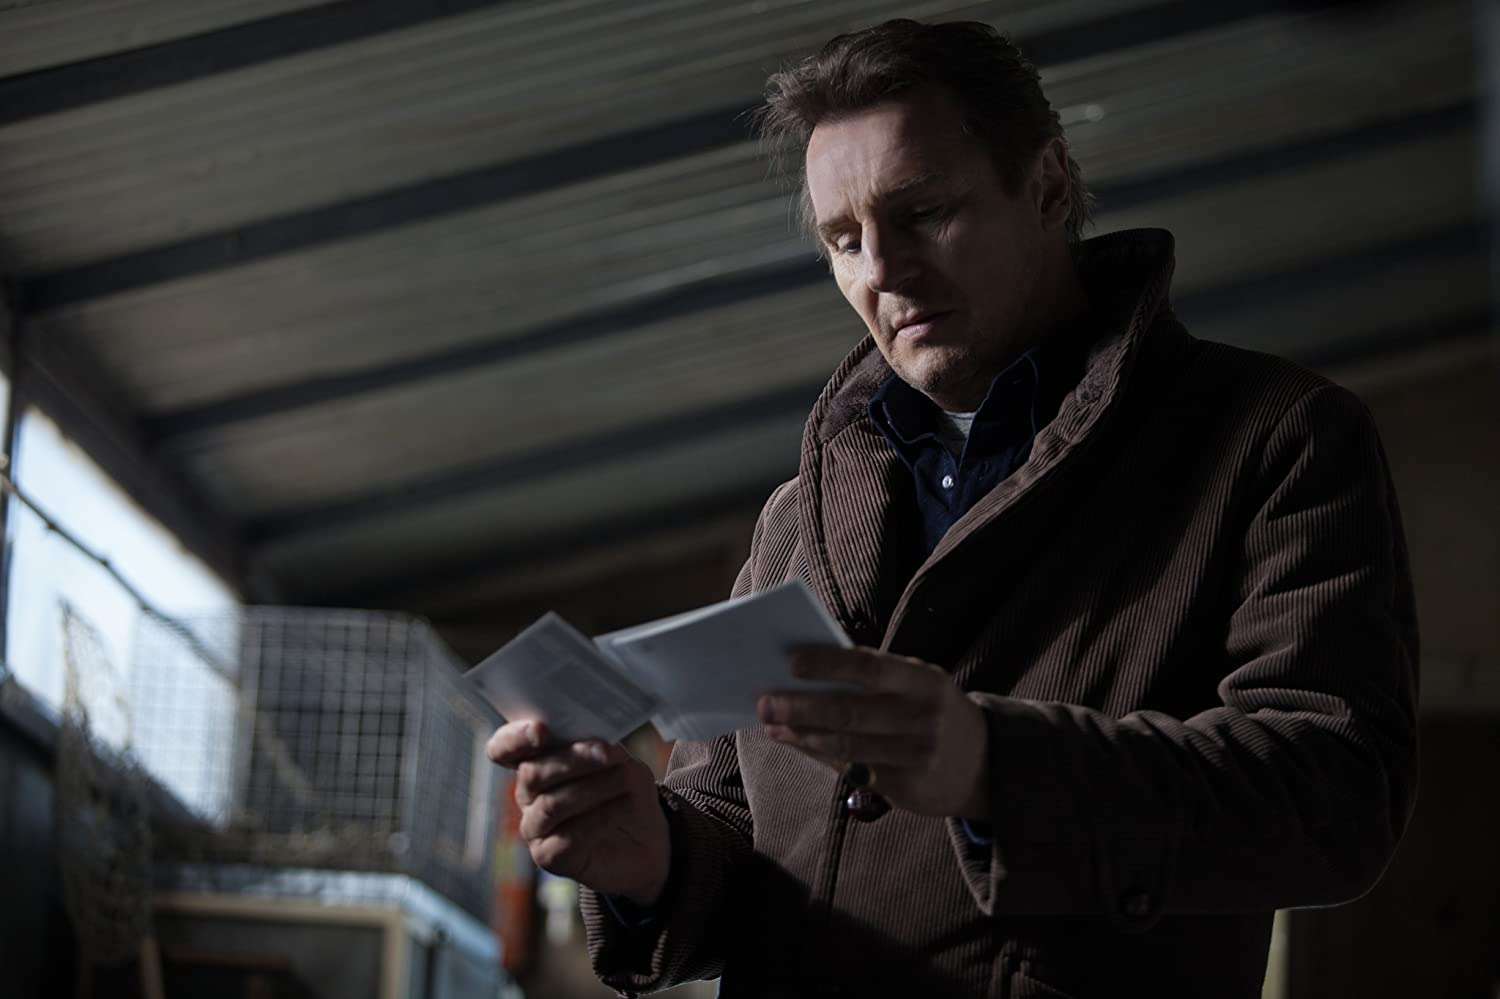 Liam Neeson in A Walk Among the Tombstones (2014)